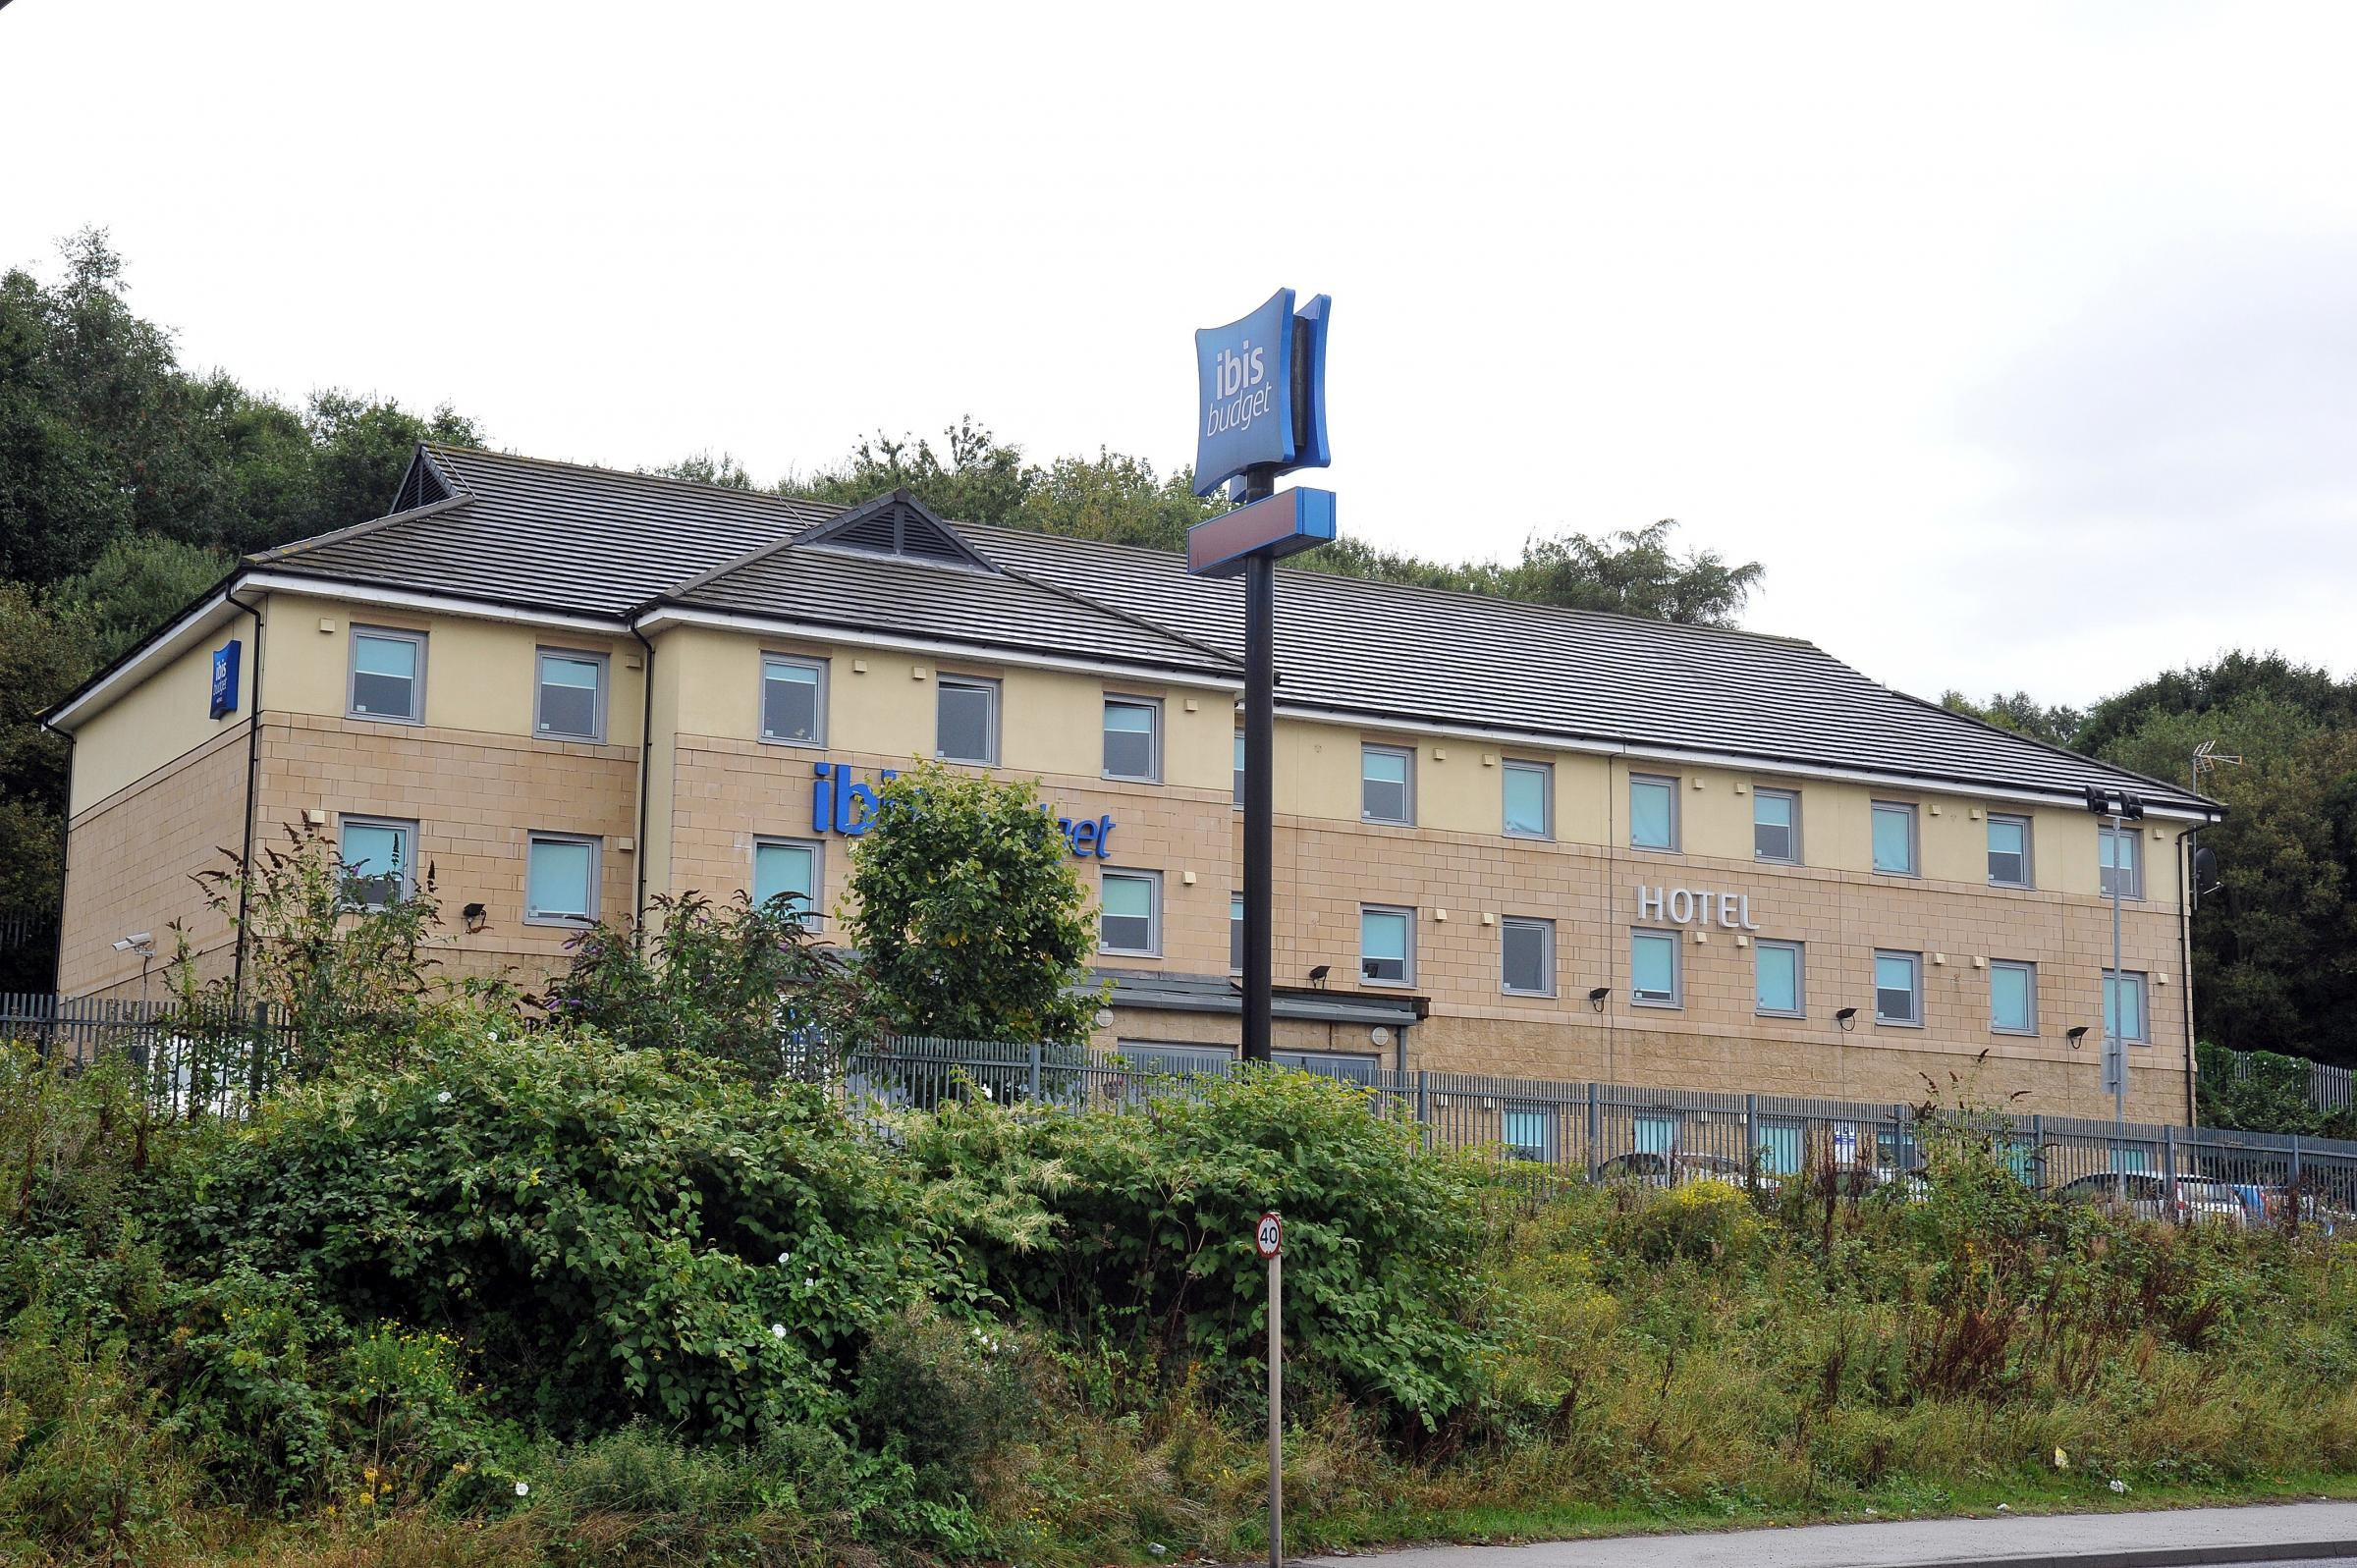 The Ibis Budget hotel off Canal Road, Bradford